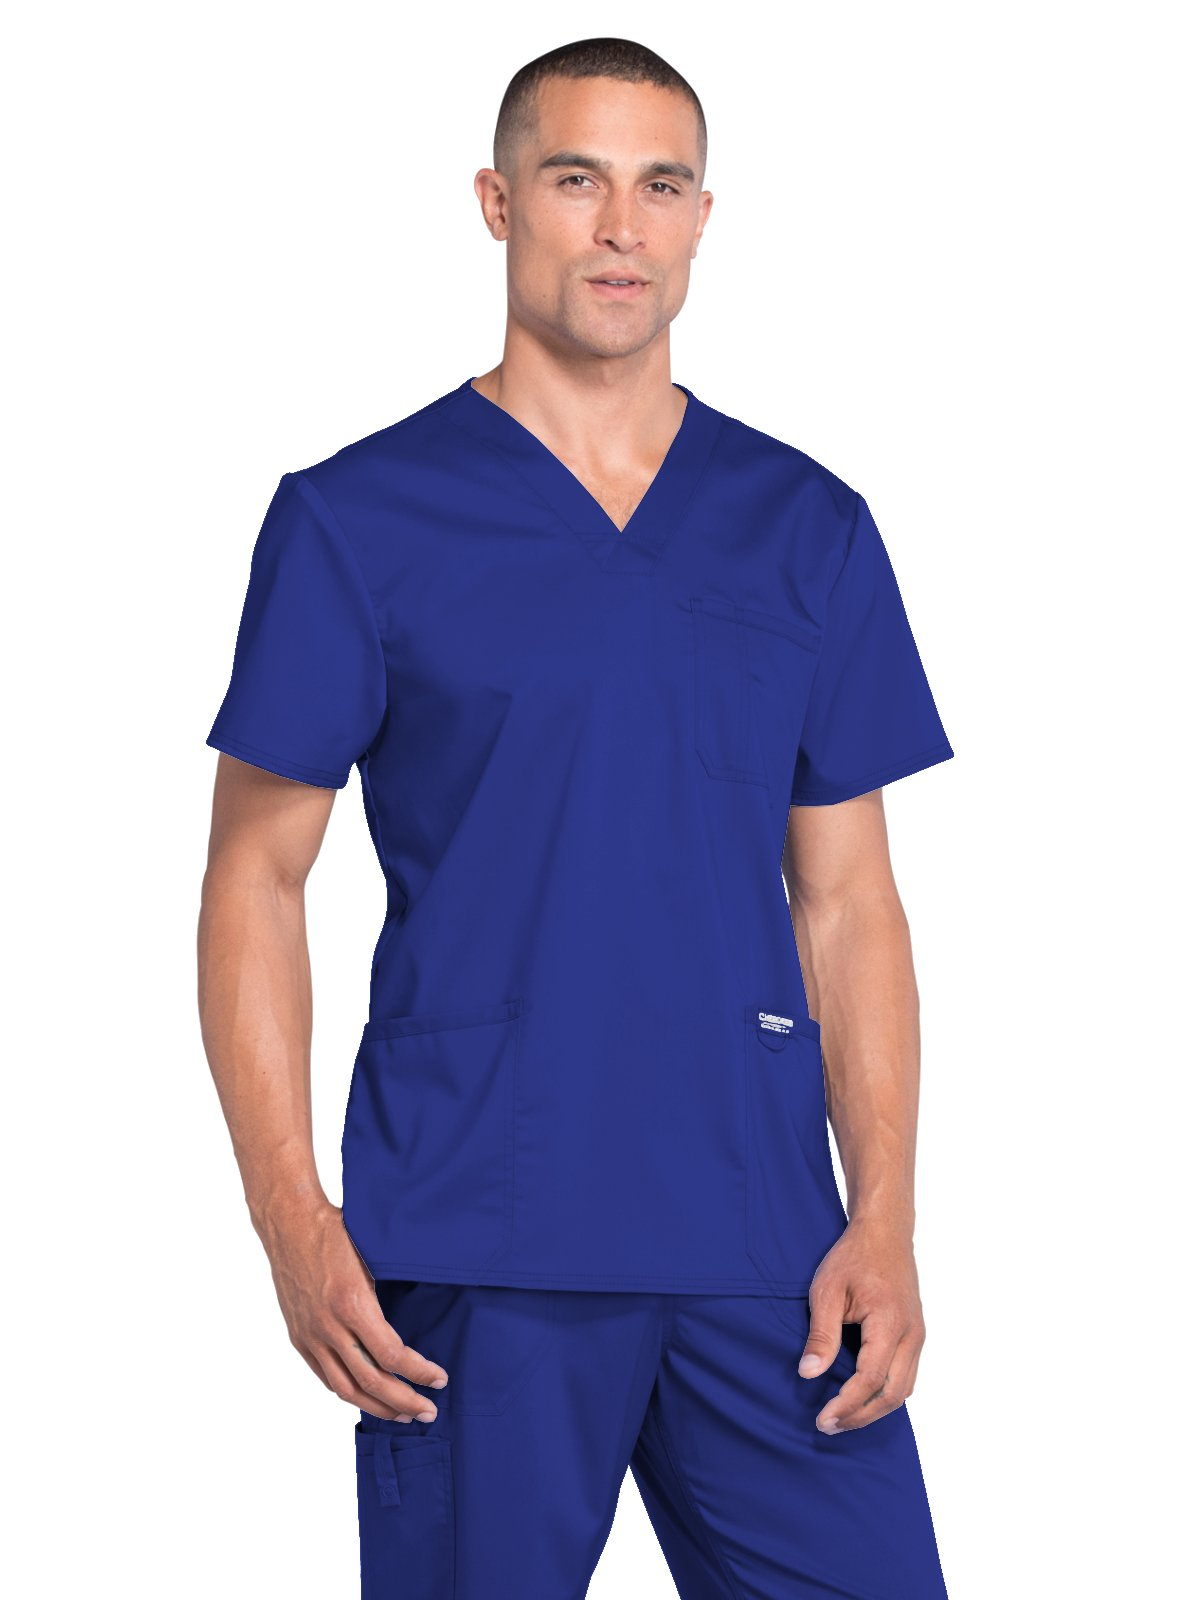 Cherokee Revolution Workwear Men's V-Neck Utility Solid Scrub Top Xx-Large Galaxy Blue by Cherokee